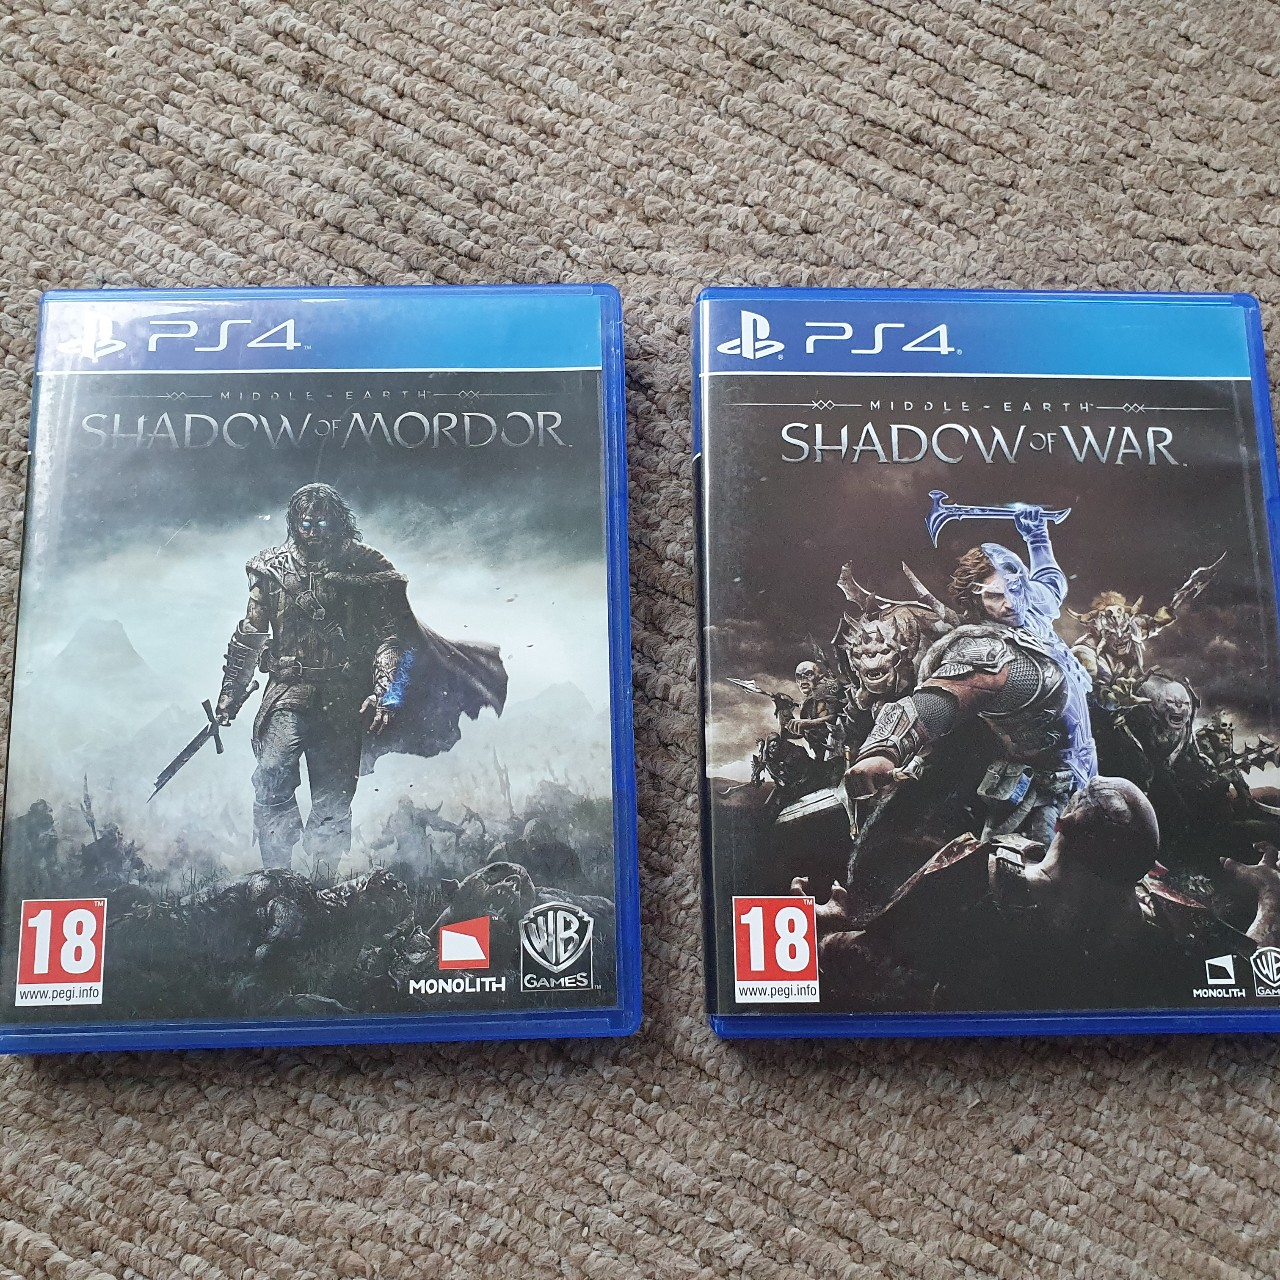 PS4 games Shadow of Mordor and Shadow of War bundle